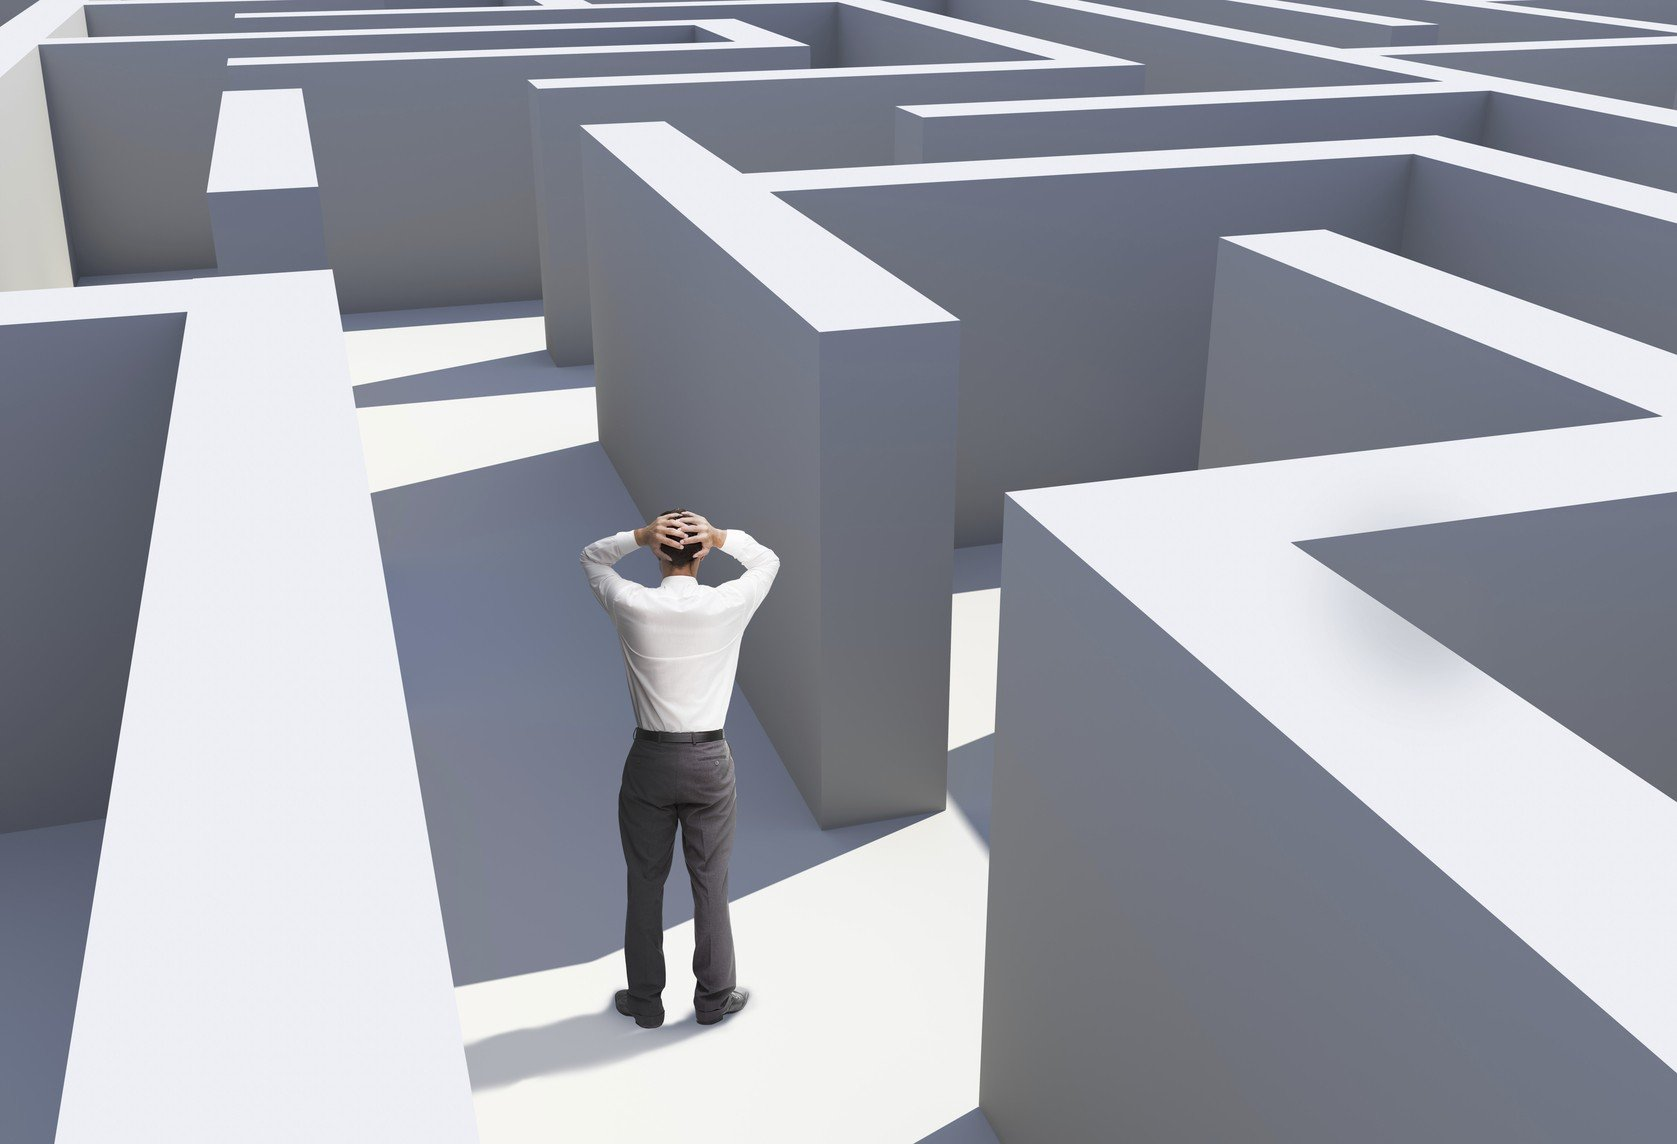 Frustrated man lost in a maze